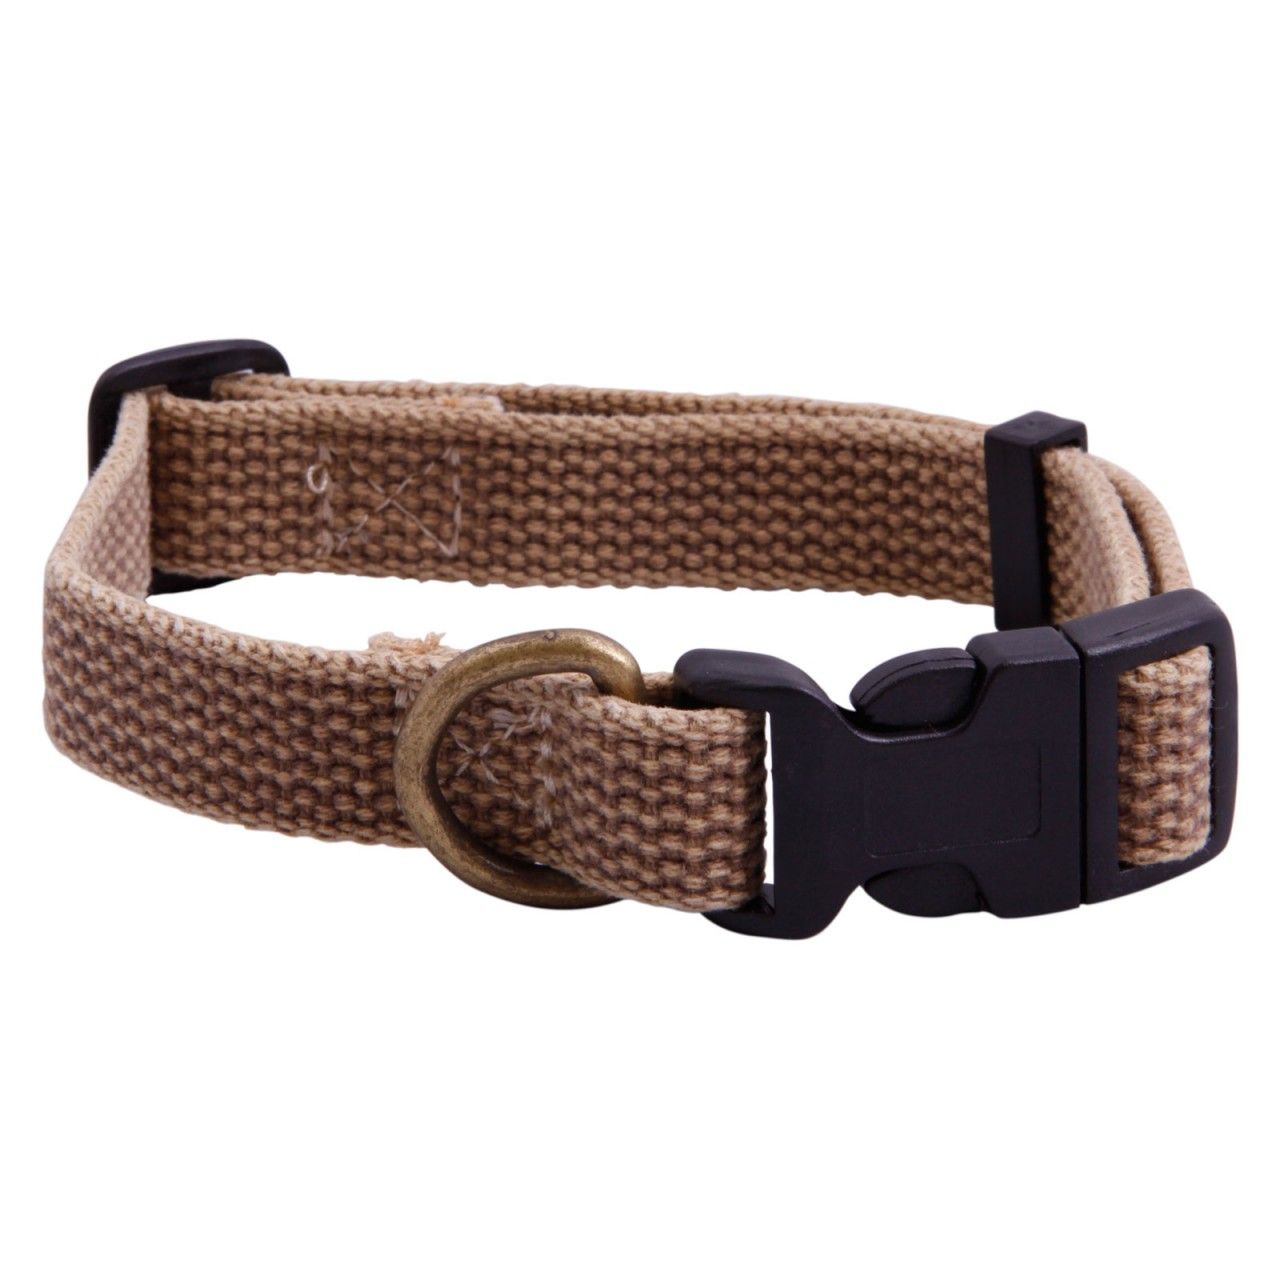 Cotton Webbing For Dog Collars